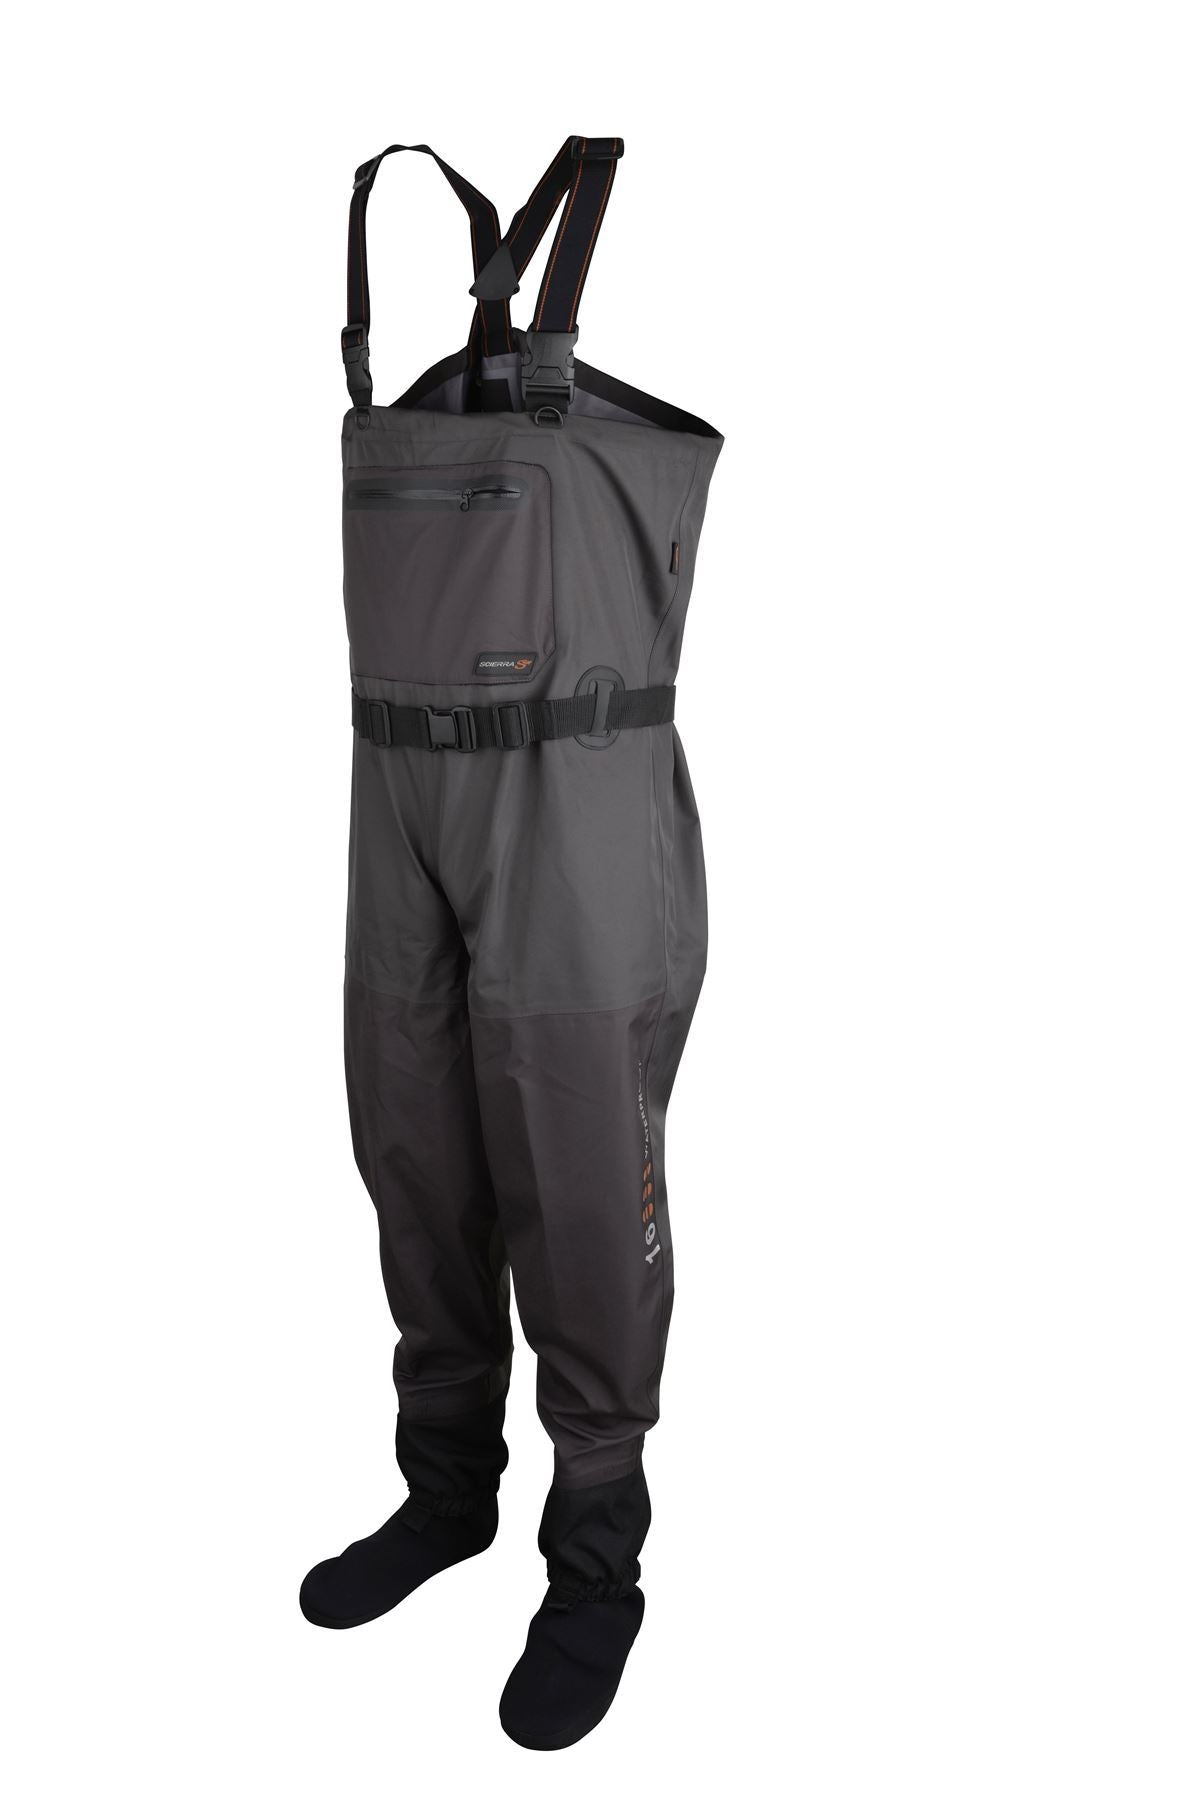 Scierra X-16000 Chest Wader - reid outdoors